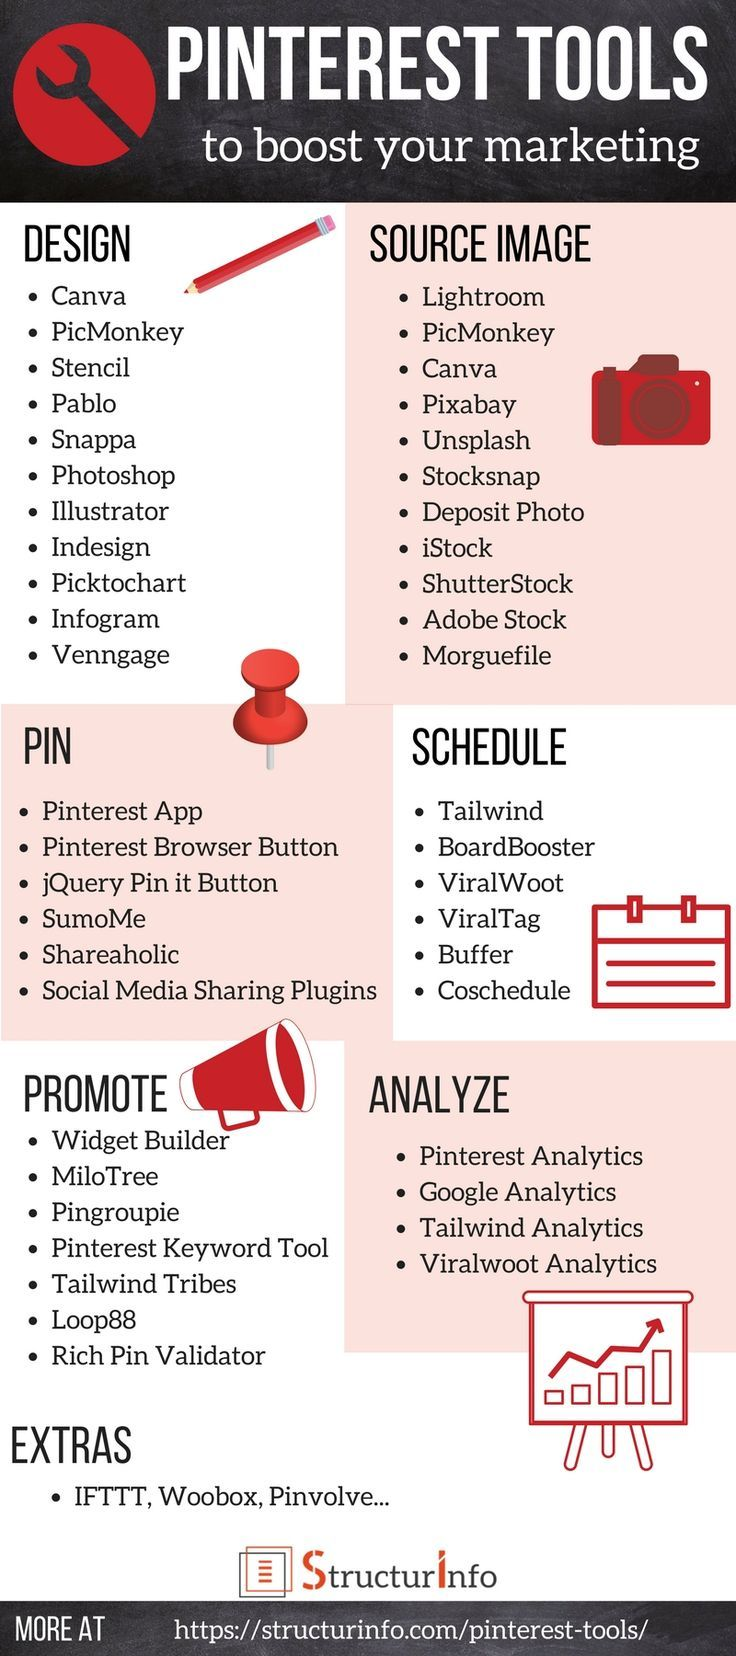 50+ Pinterest tools to help you design Pins, Schedule your Pins, Promote your Pinterest account and analyze your results for improvement - Pinterest Tips - Pinterest marketing tips